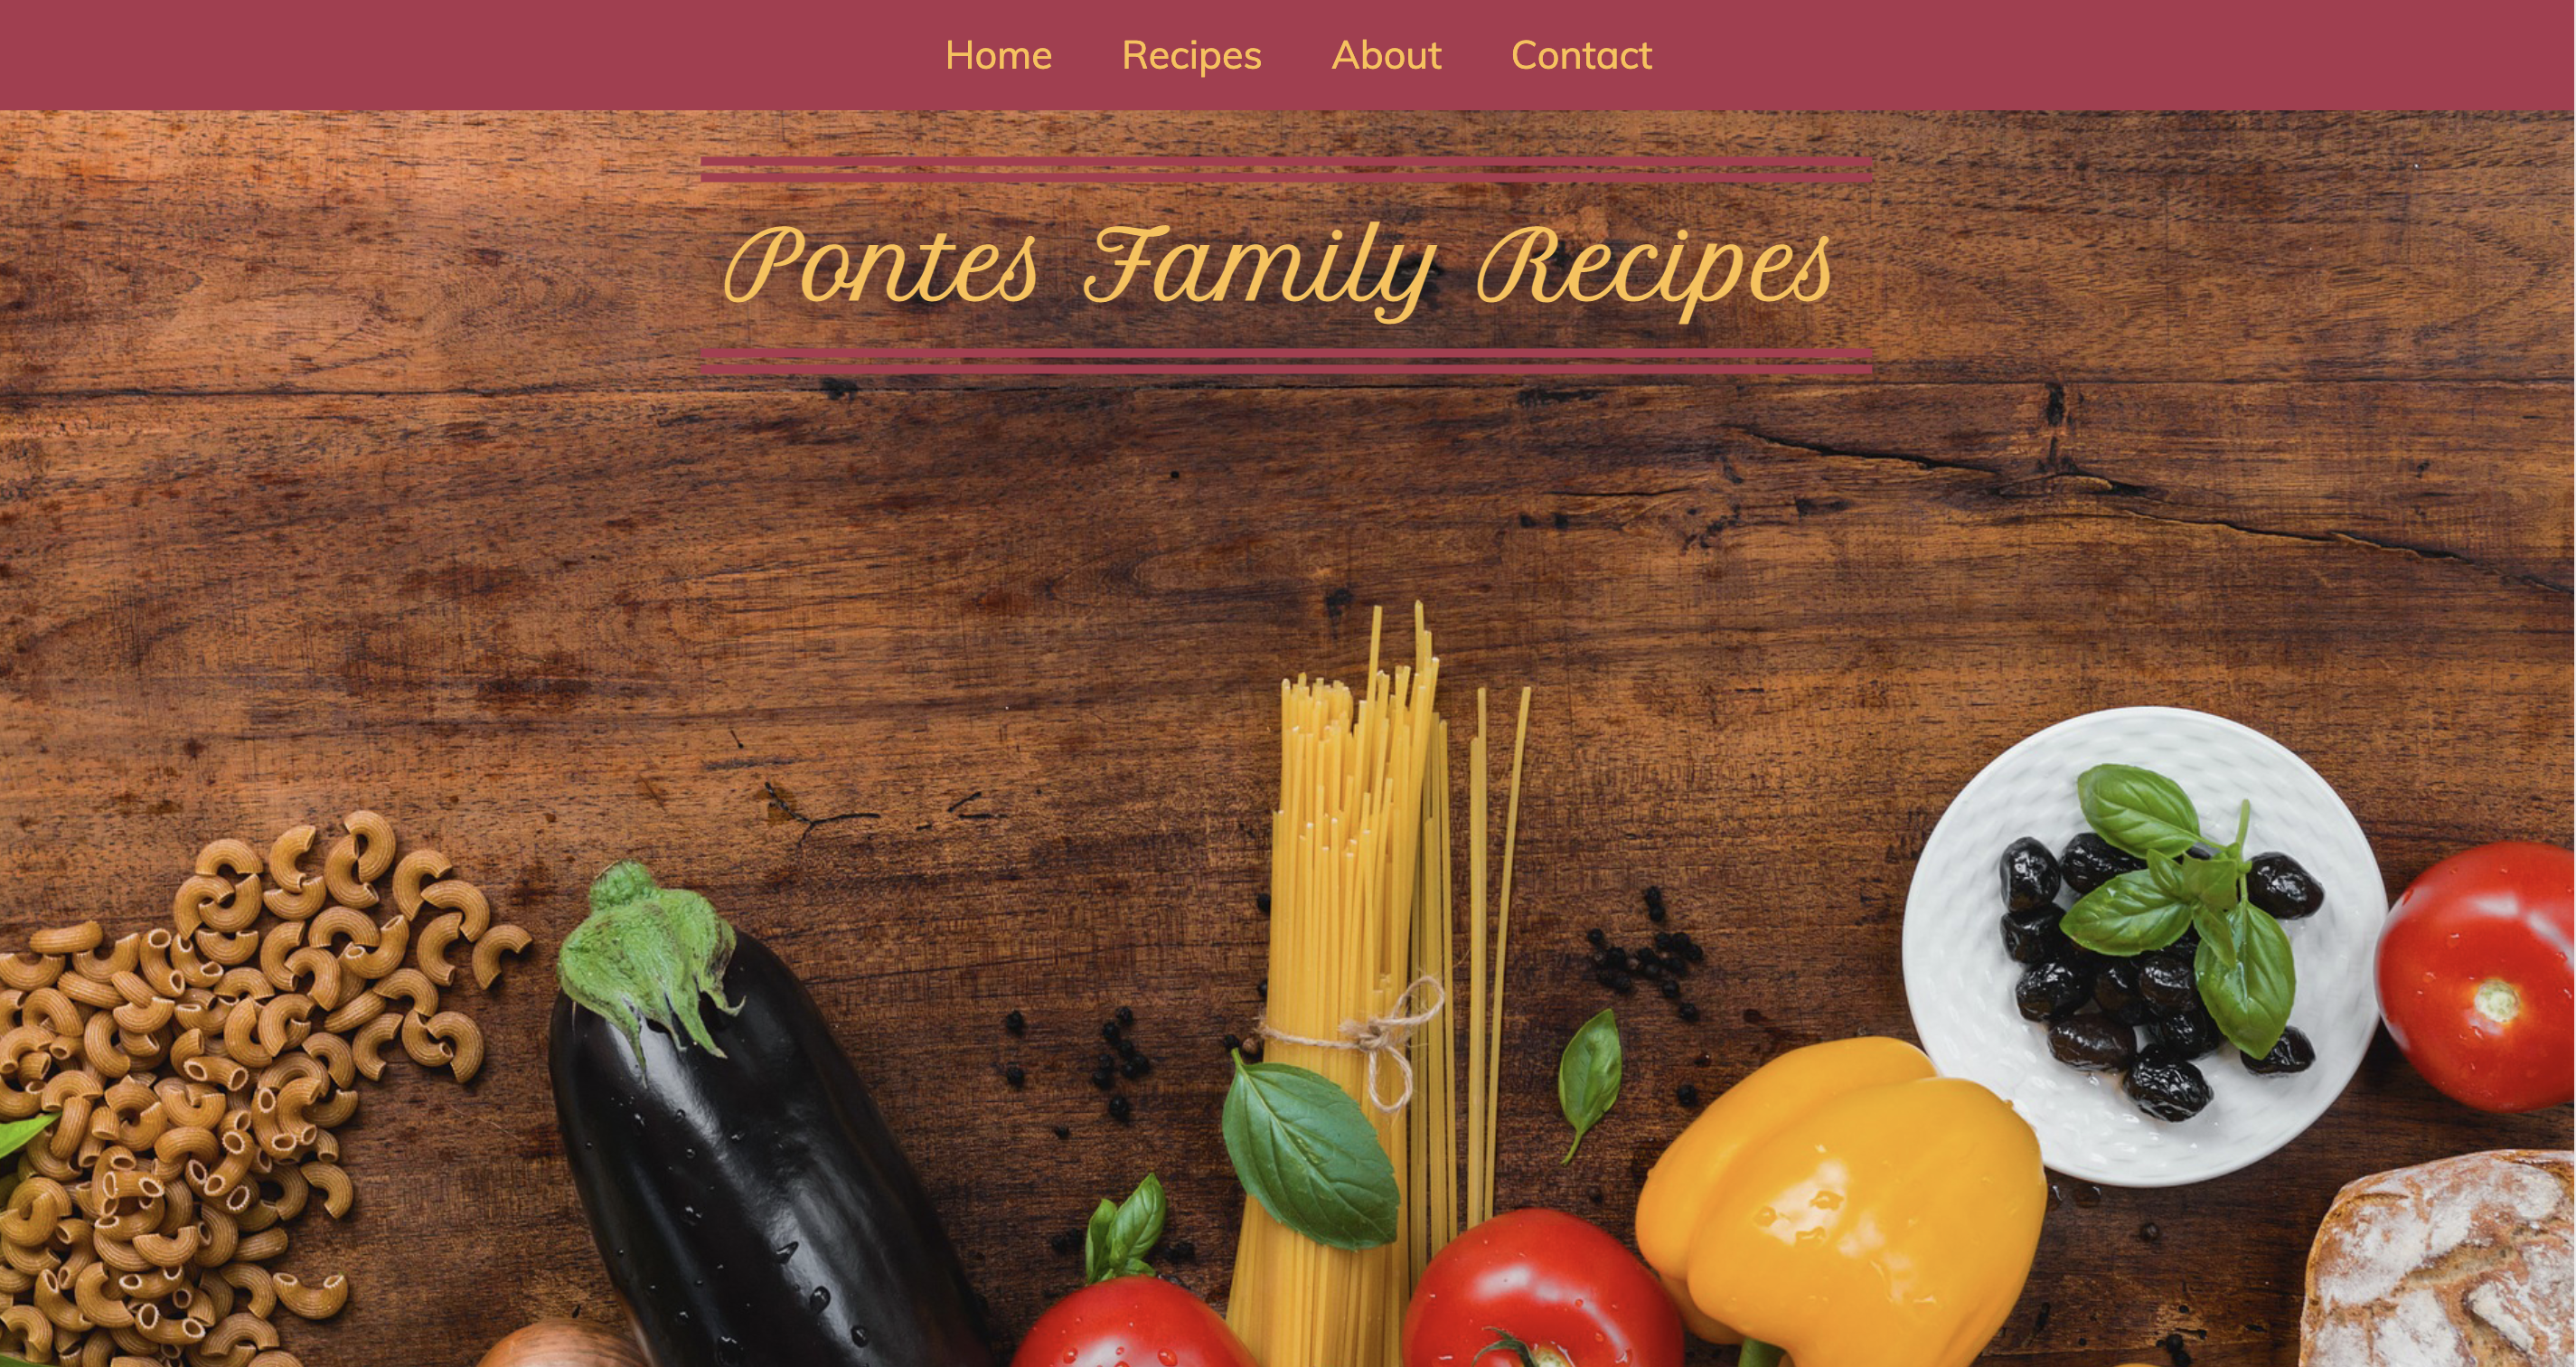 a screenshot of the homepage for the website Pontes Family Recipes